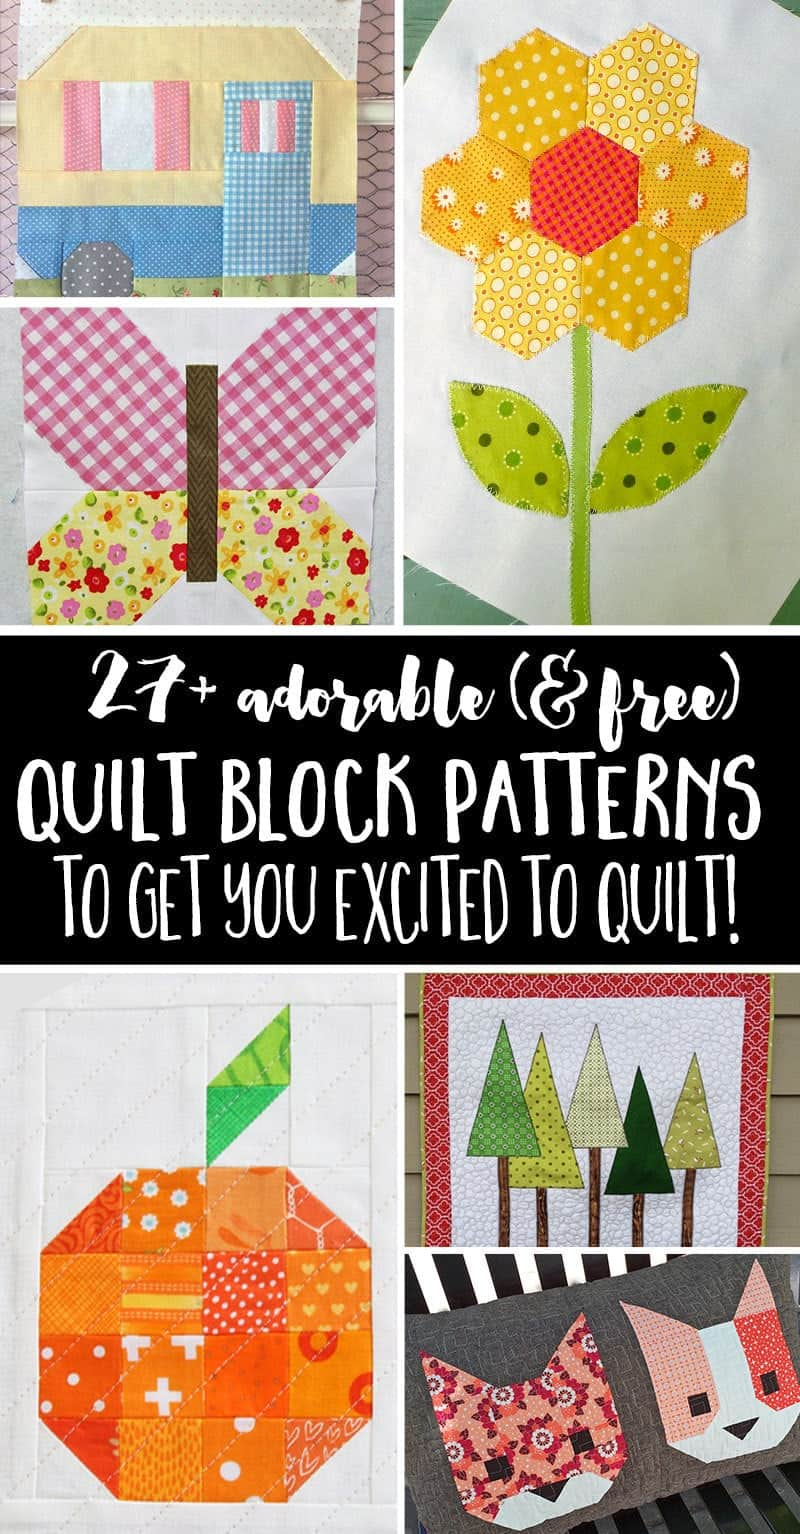 Pinterest Christmas Quilted Wall Hangings 27 Free Quilt Block Patterns